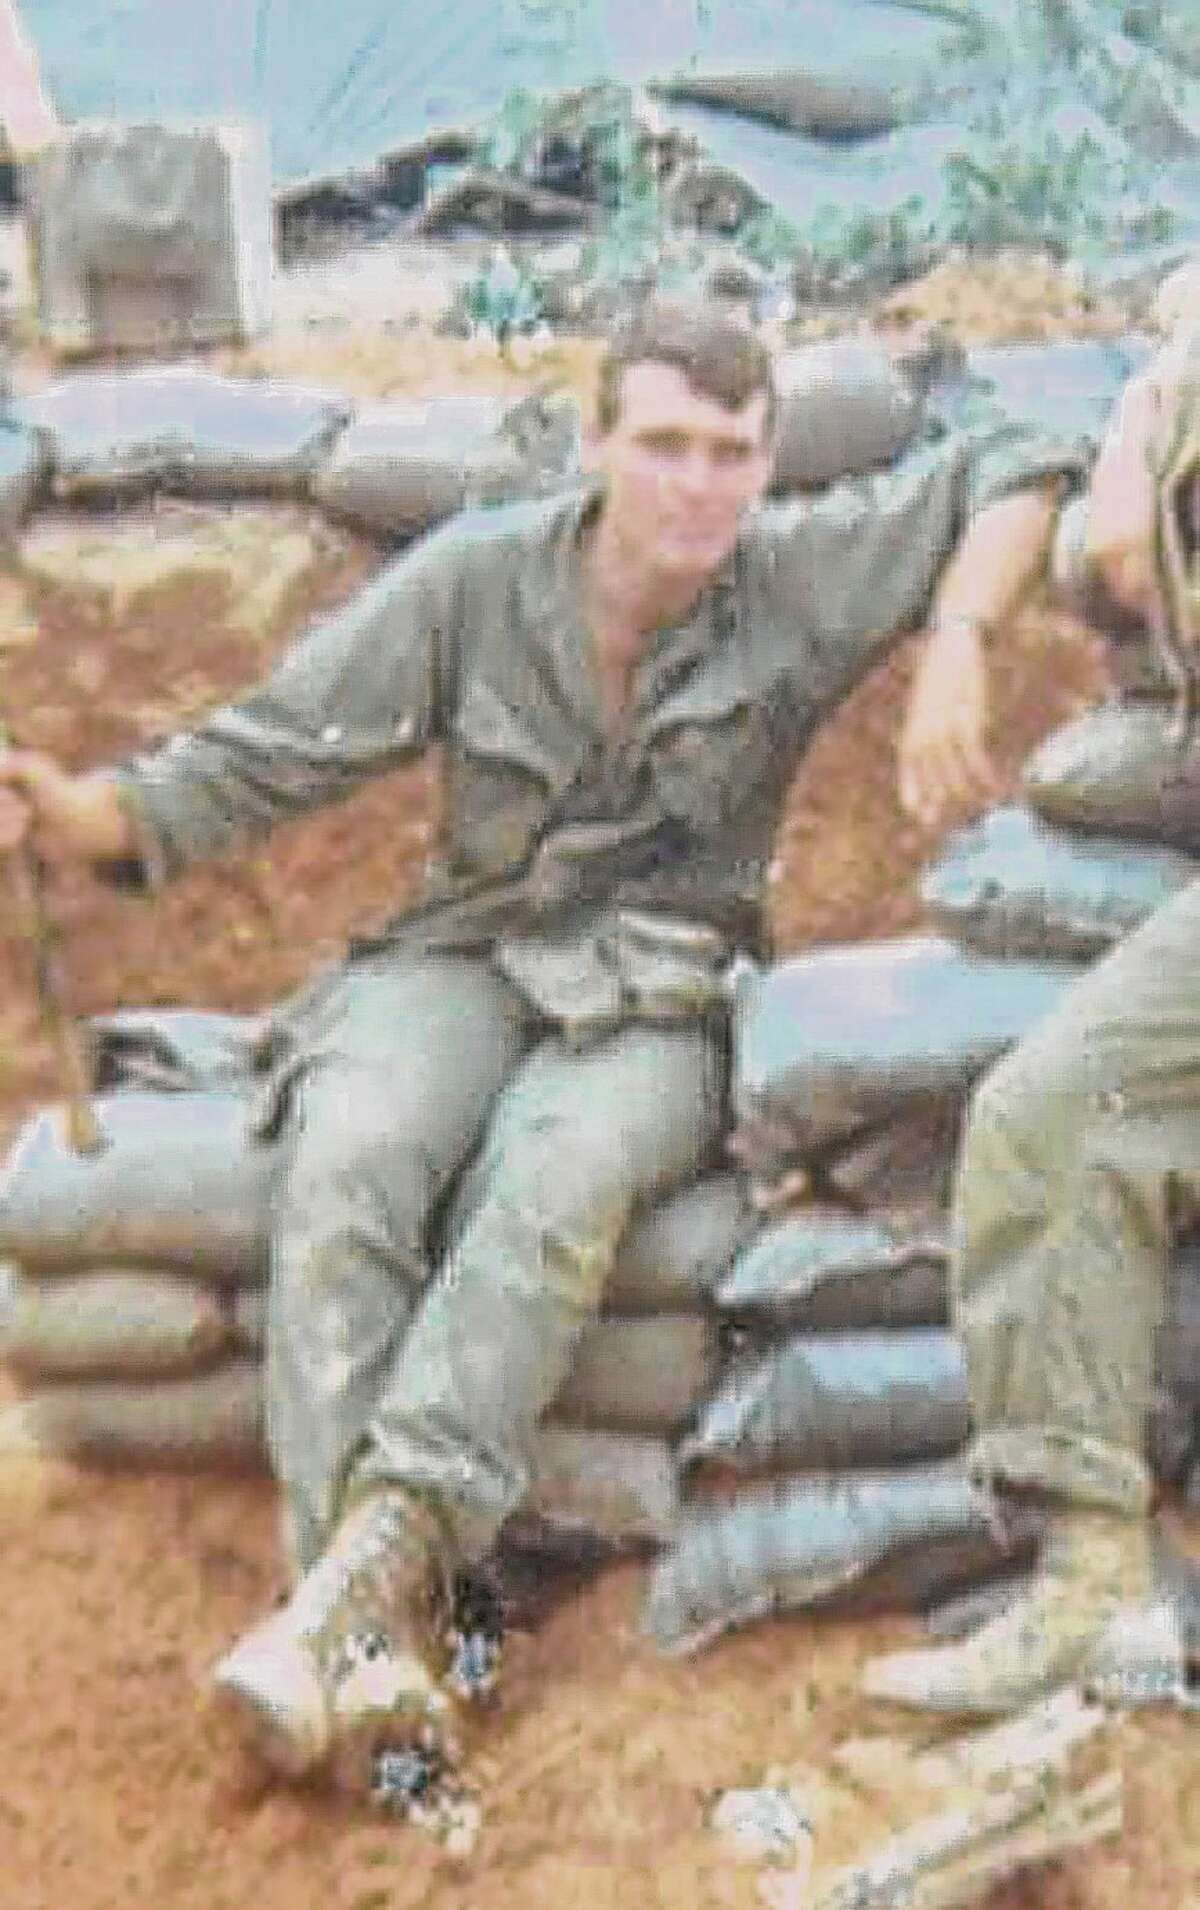 Terry Kindlon in the Quang Tri Province, Vietnam in 1967. (Courtesy of Terry Kindlon)